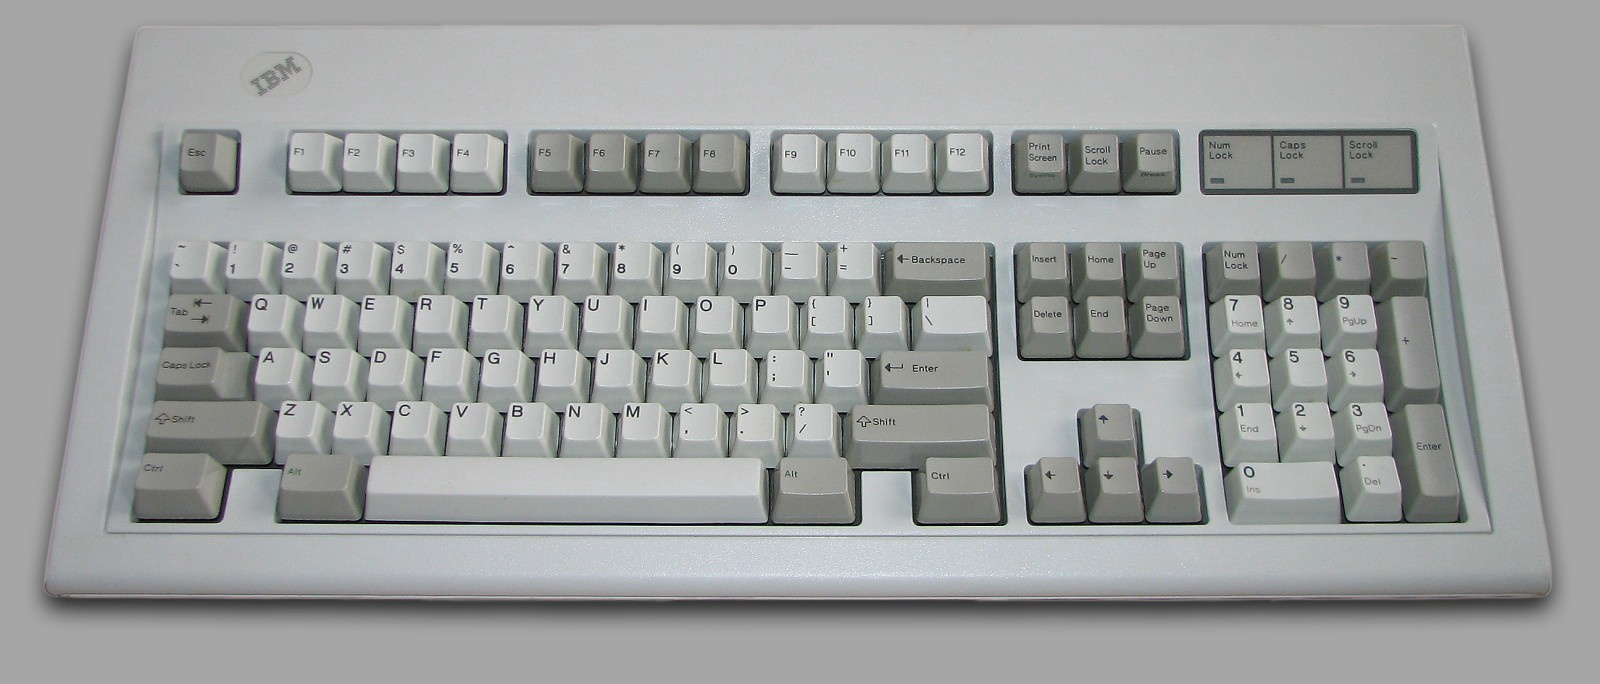 The Keyboard Case - The Forever Student